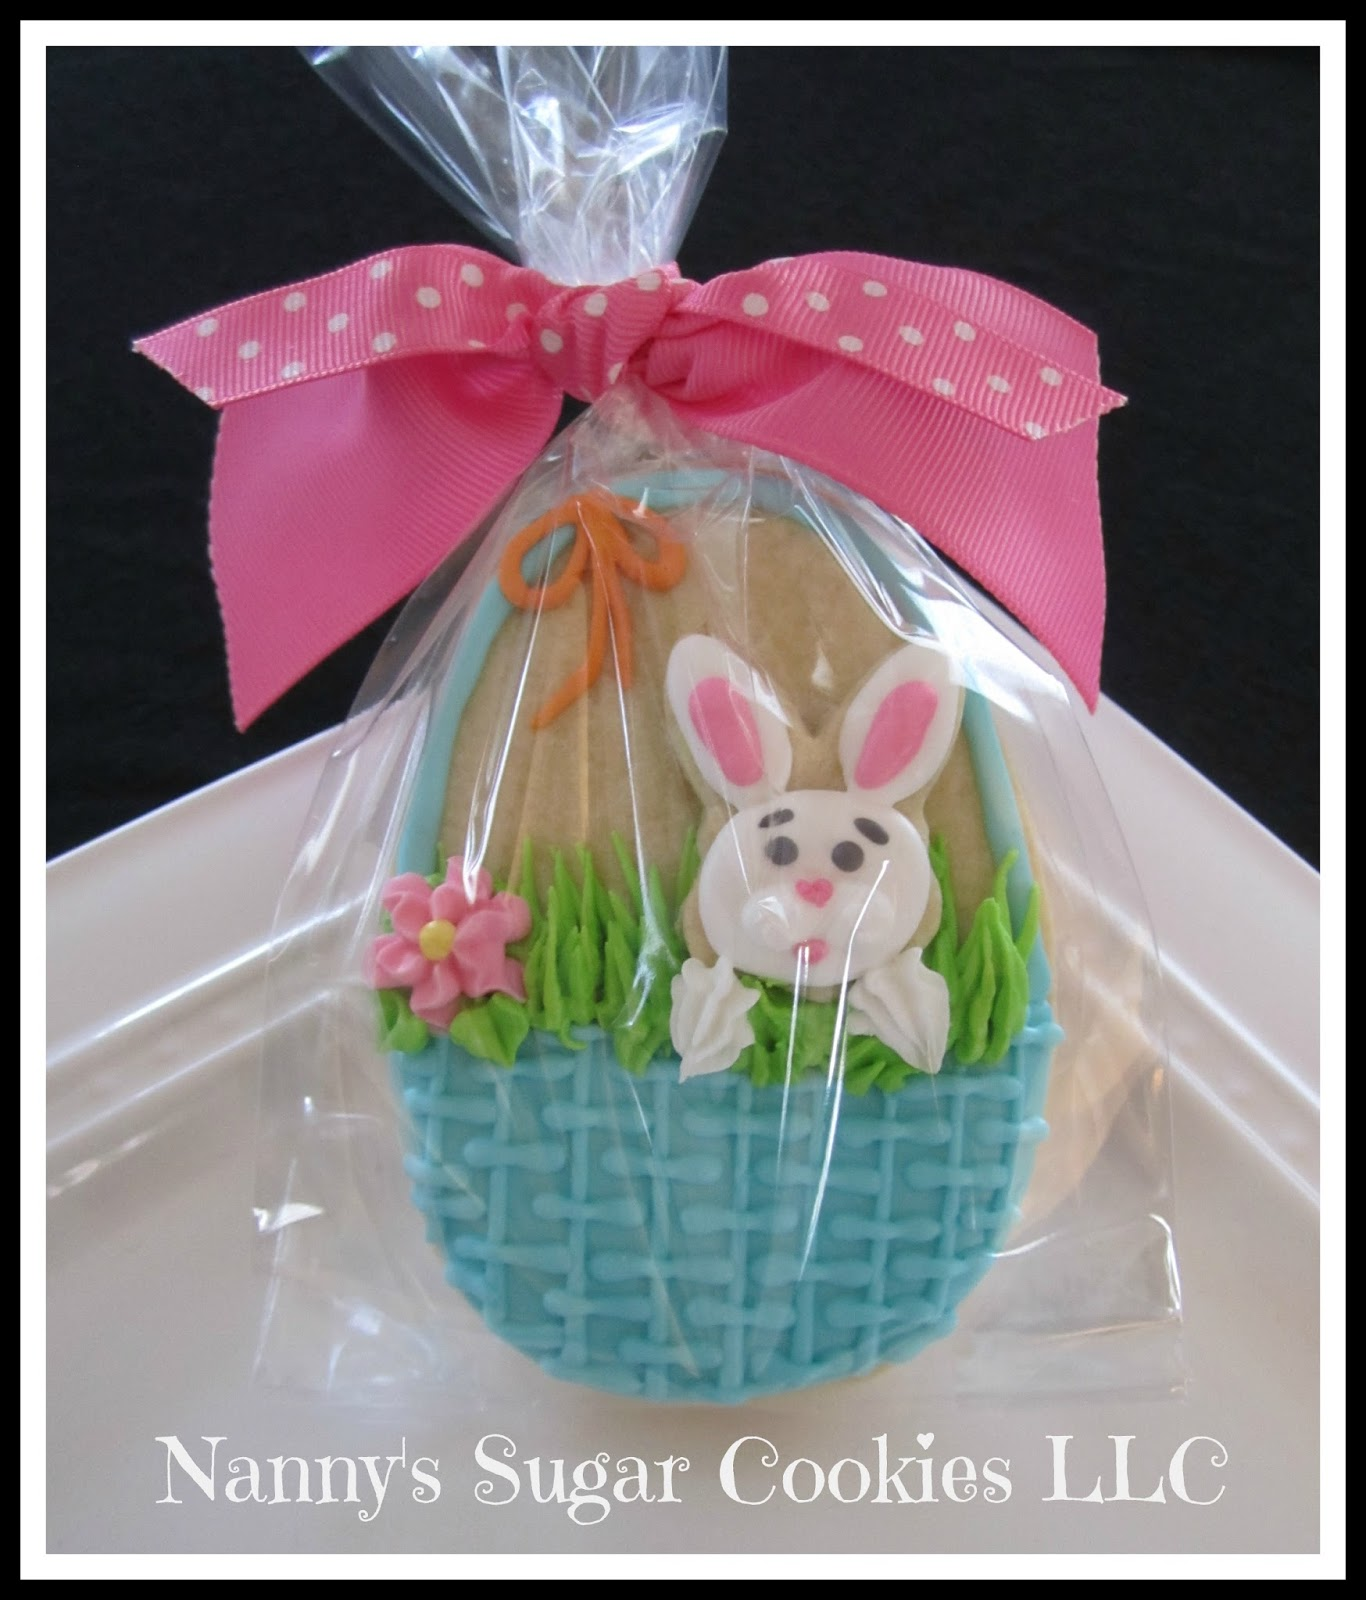 Nannys sugar cookies llc the easter bunny is coming to town cookie favor with mini cookie negle Images